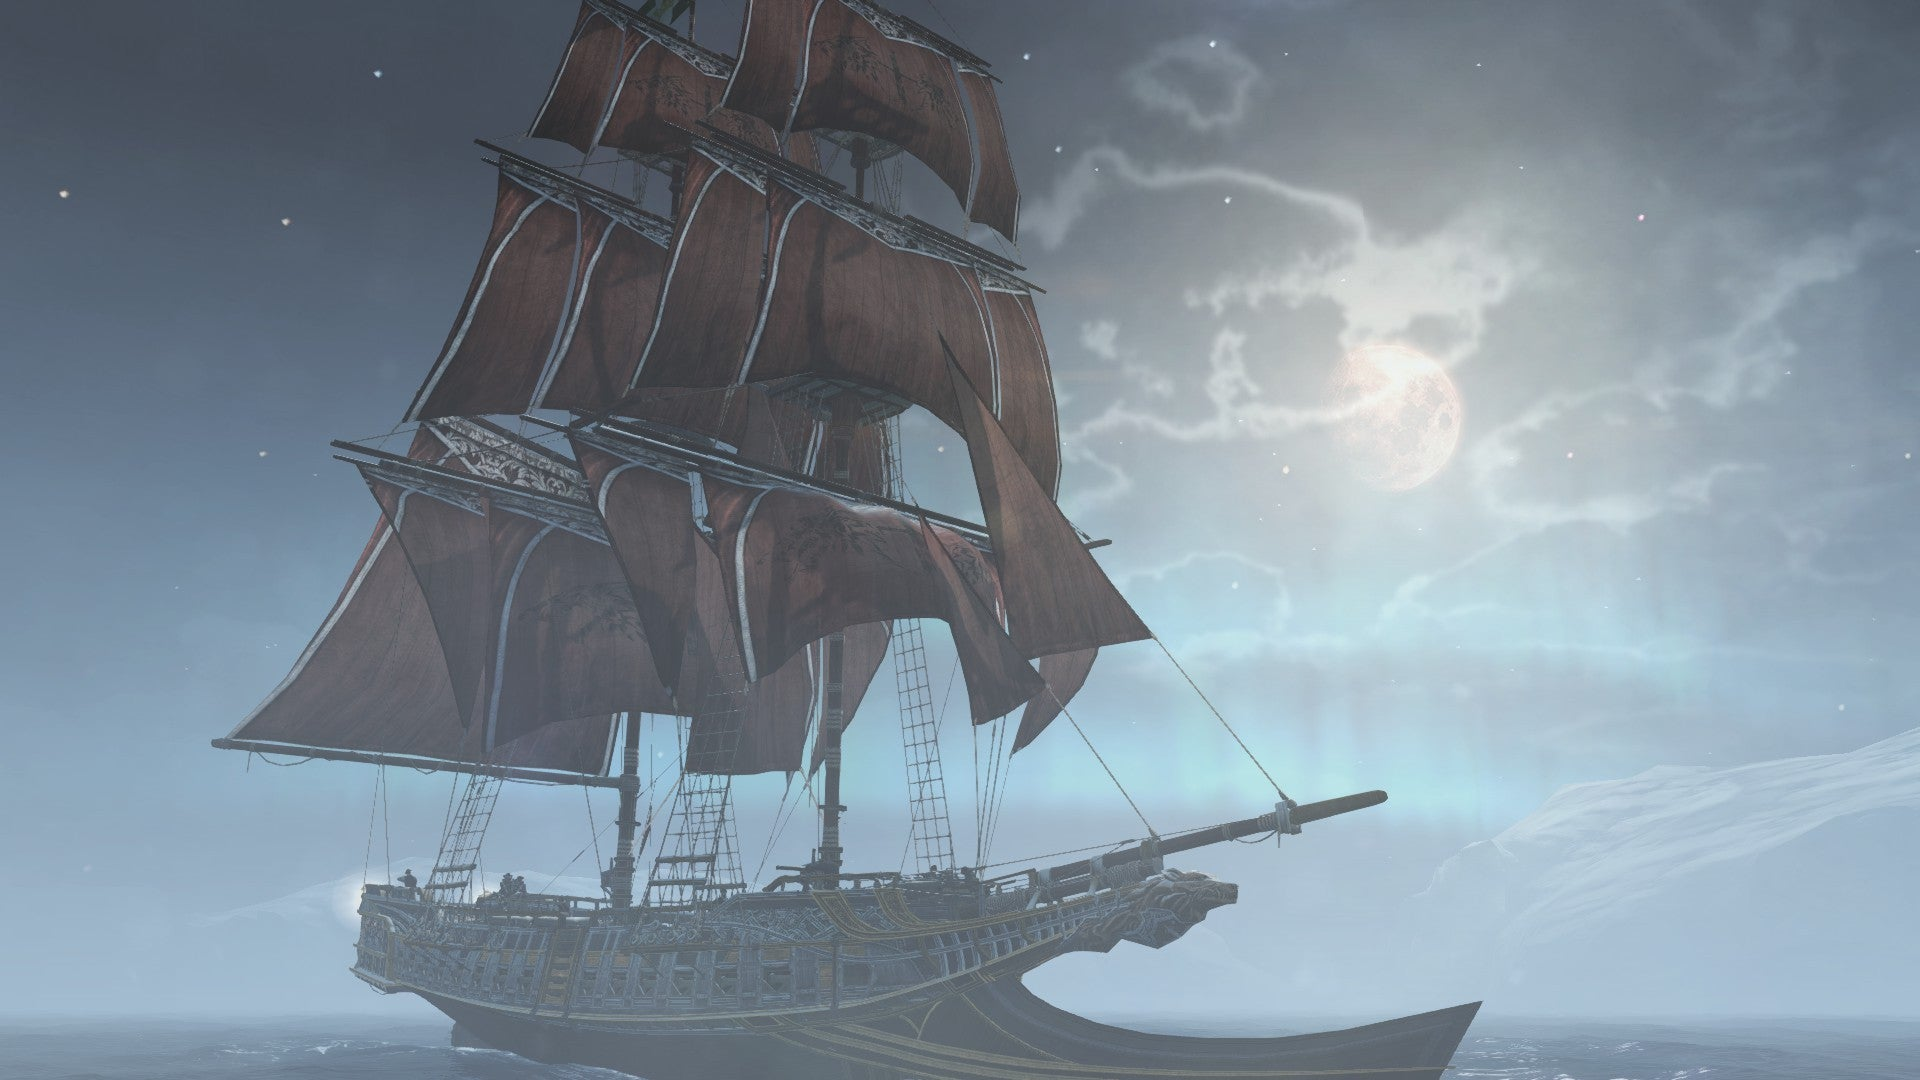 assassin's creed rogue review: the best assassin's creed you'll